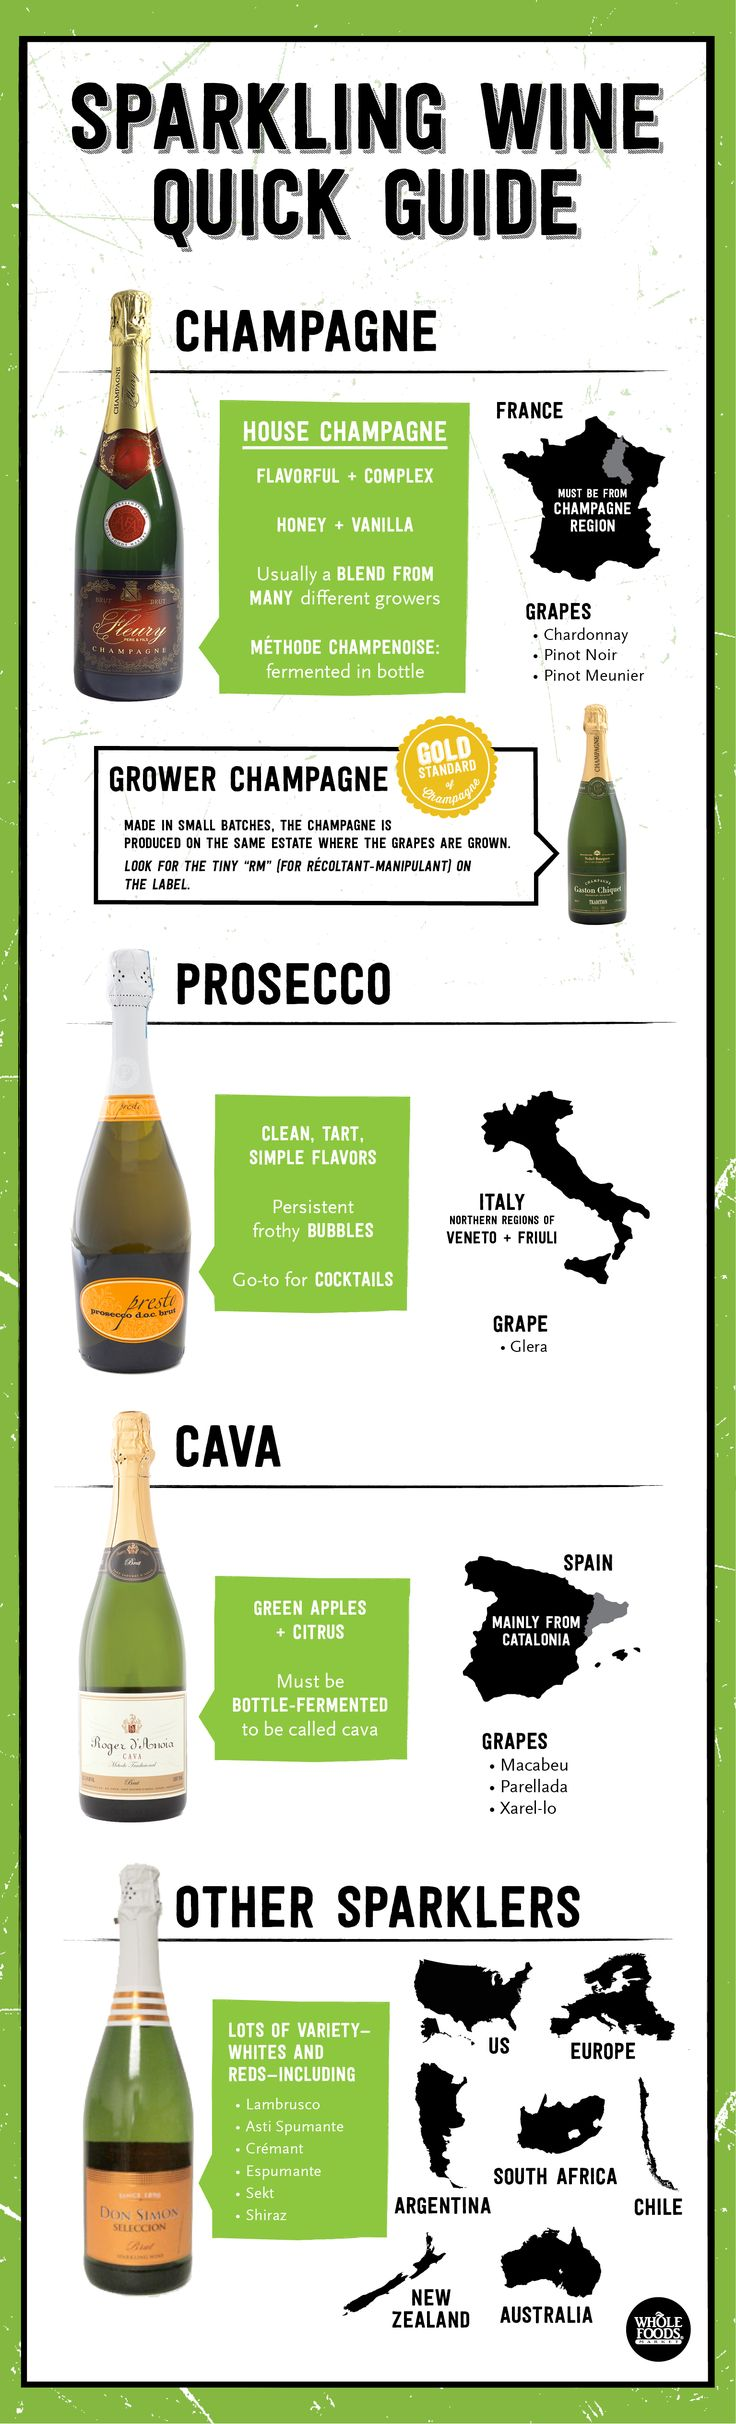 Quick Guide to Sparkling Wine // Champagne, Cava, Prosecco... All of them!